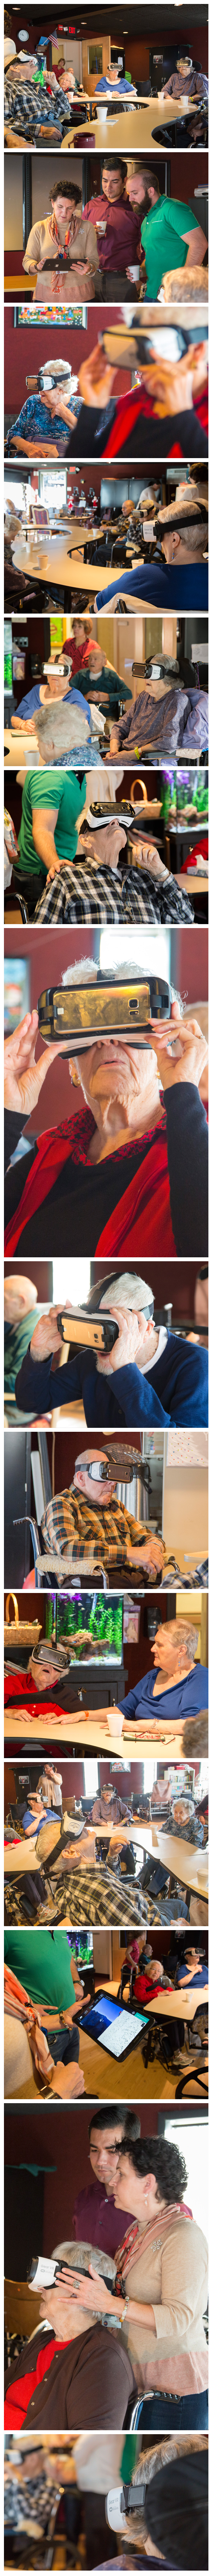 image of Westview Residents and Virtual Reality Photos